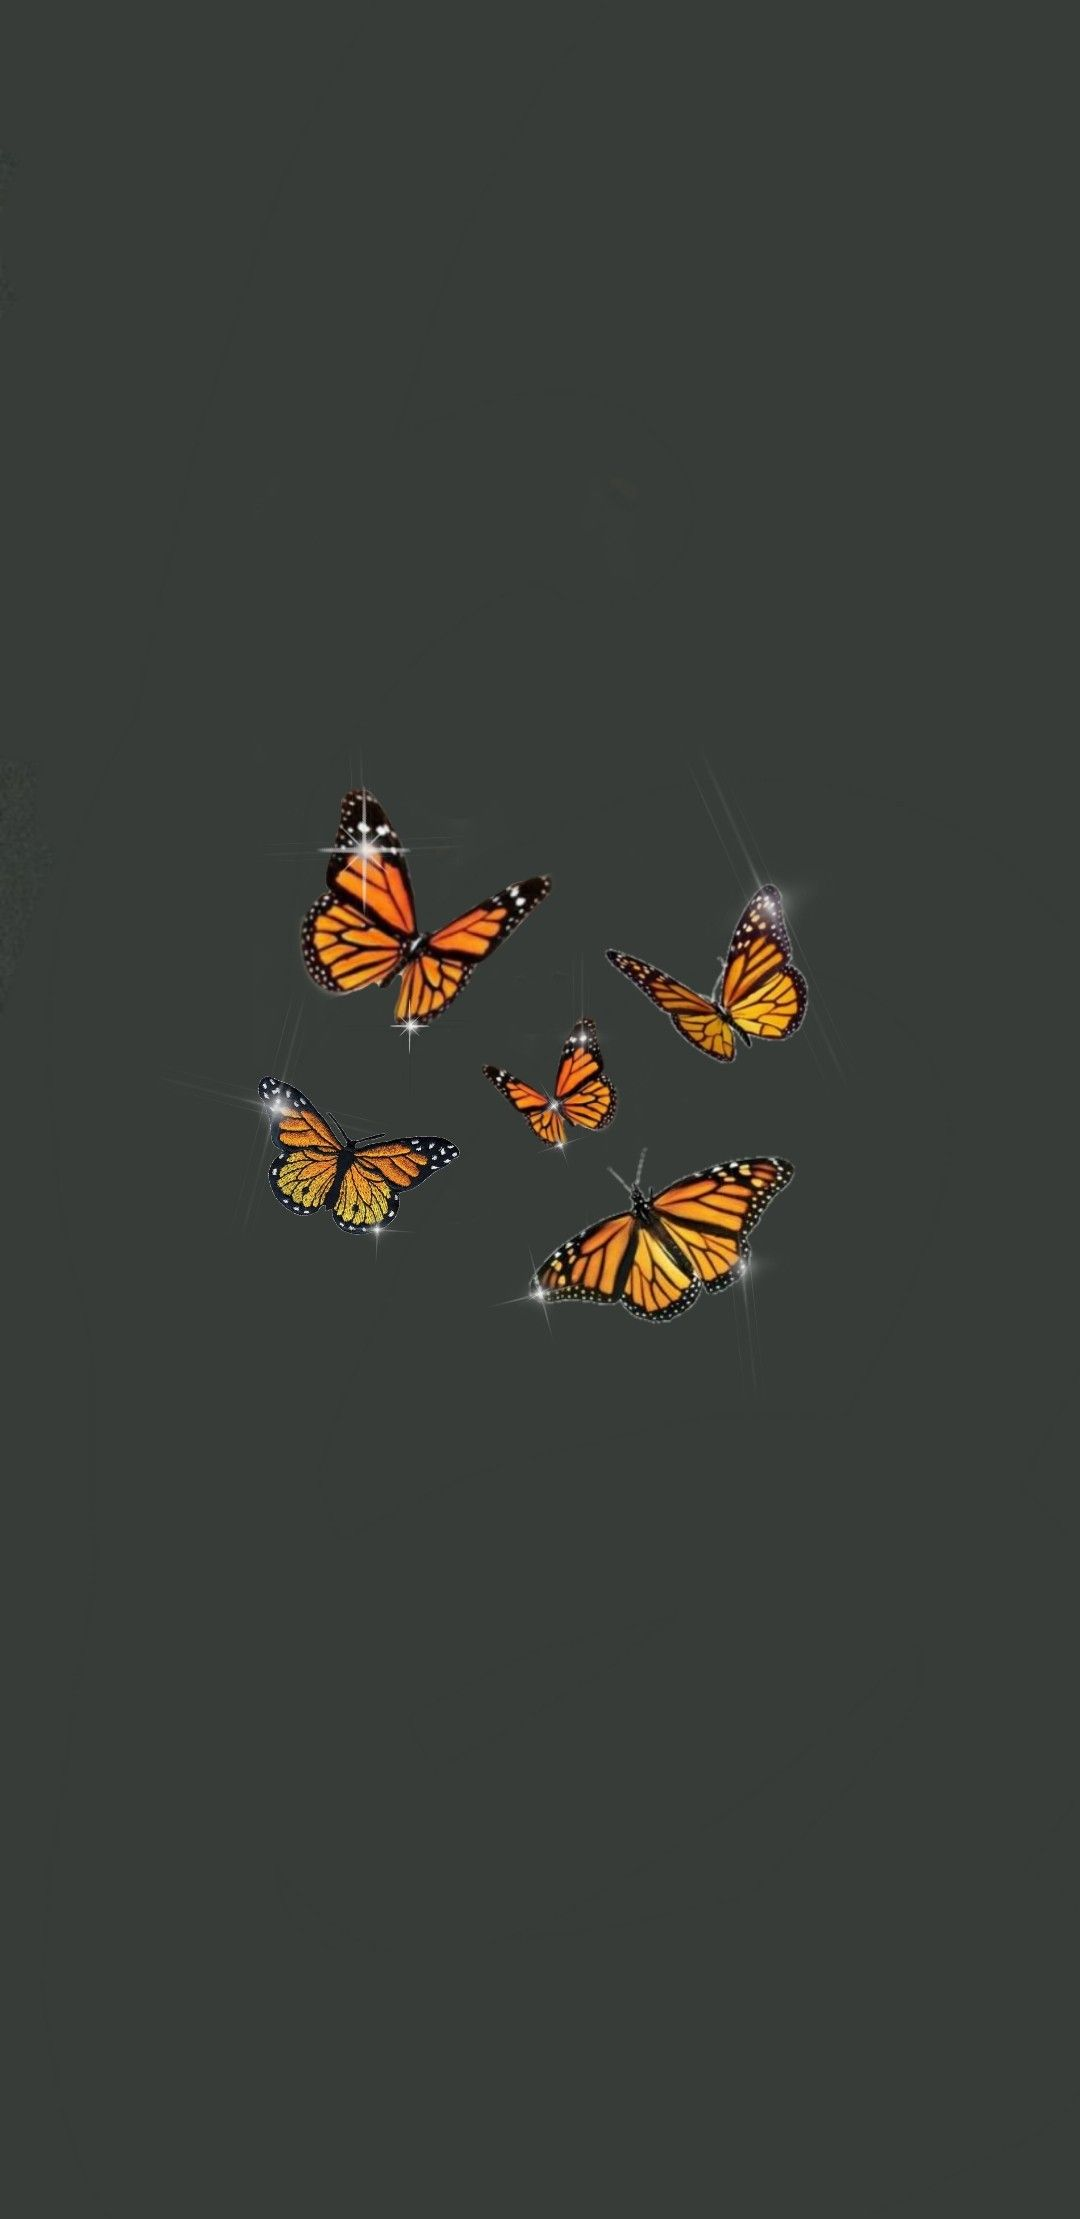 Butterfly Bling In 2020 Iphone Wallpaper Tumblr Aesthetic Butterfly Wallpaper Iphone Butterfly Wallpaper